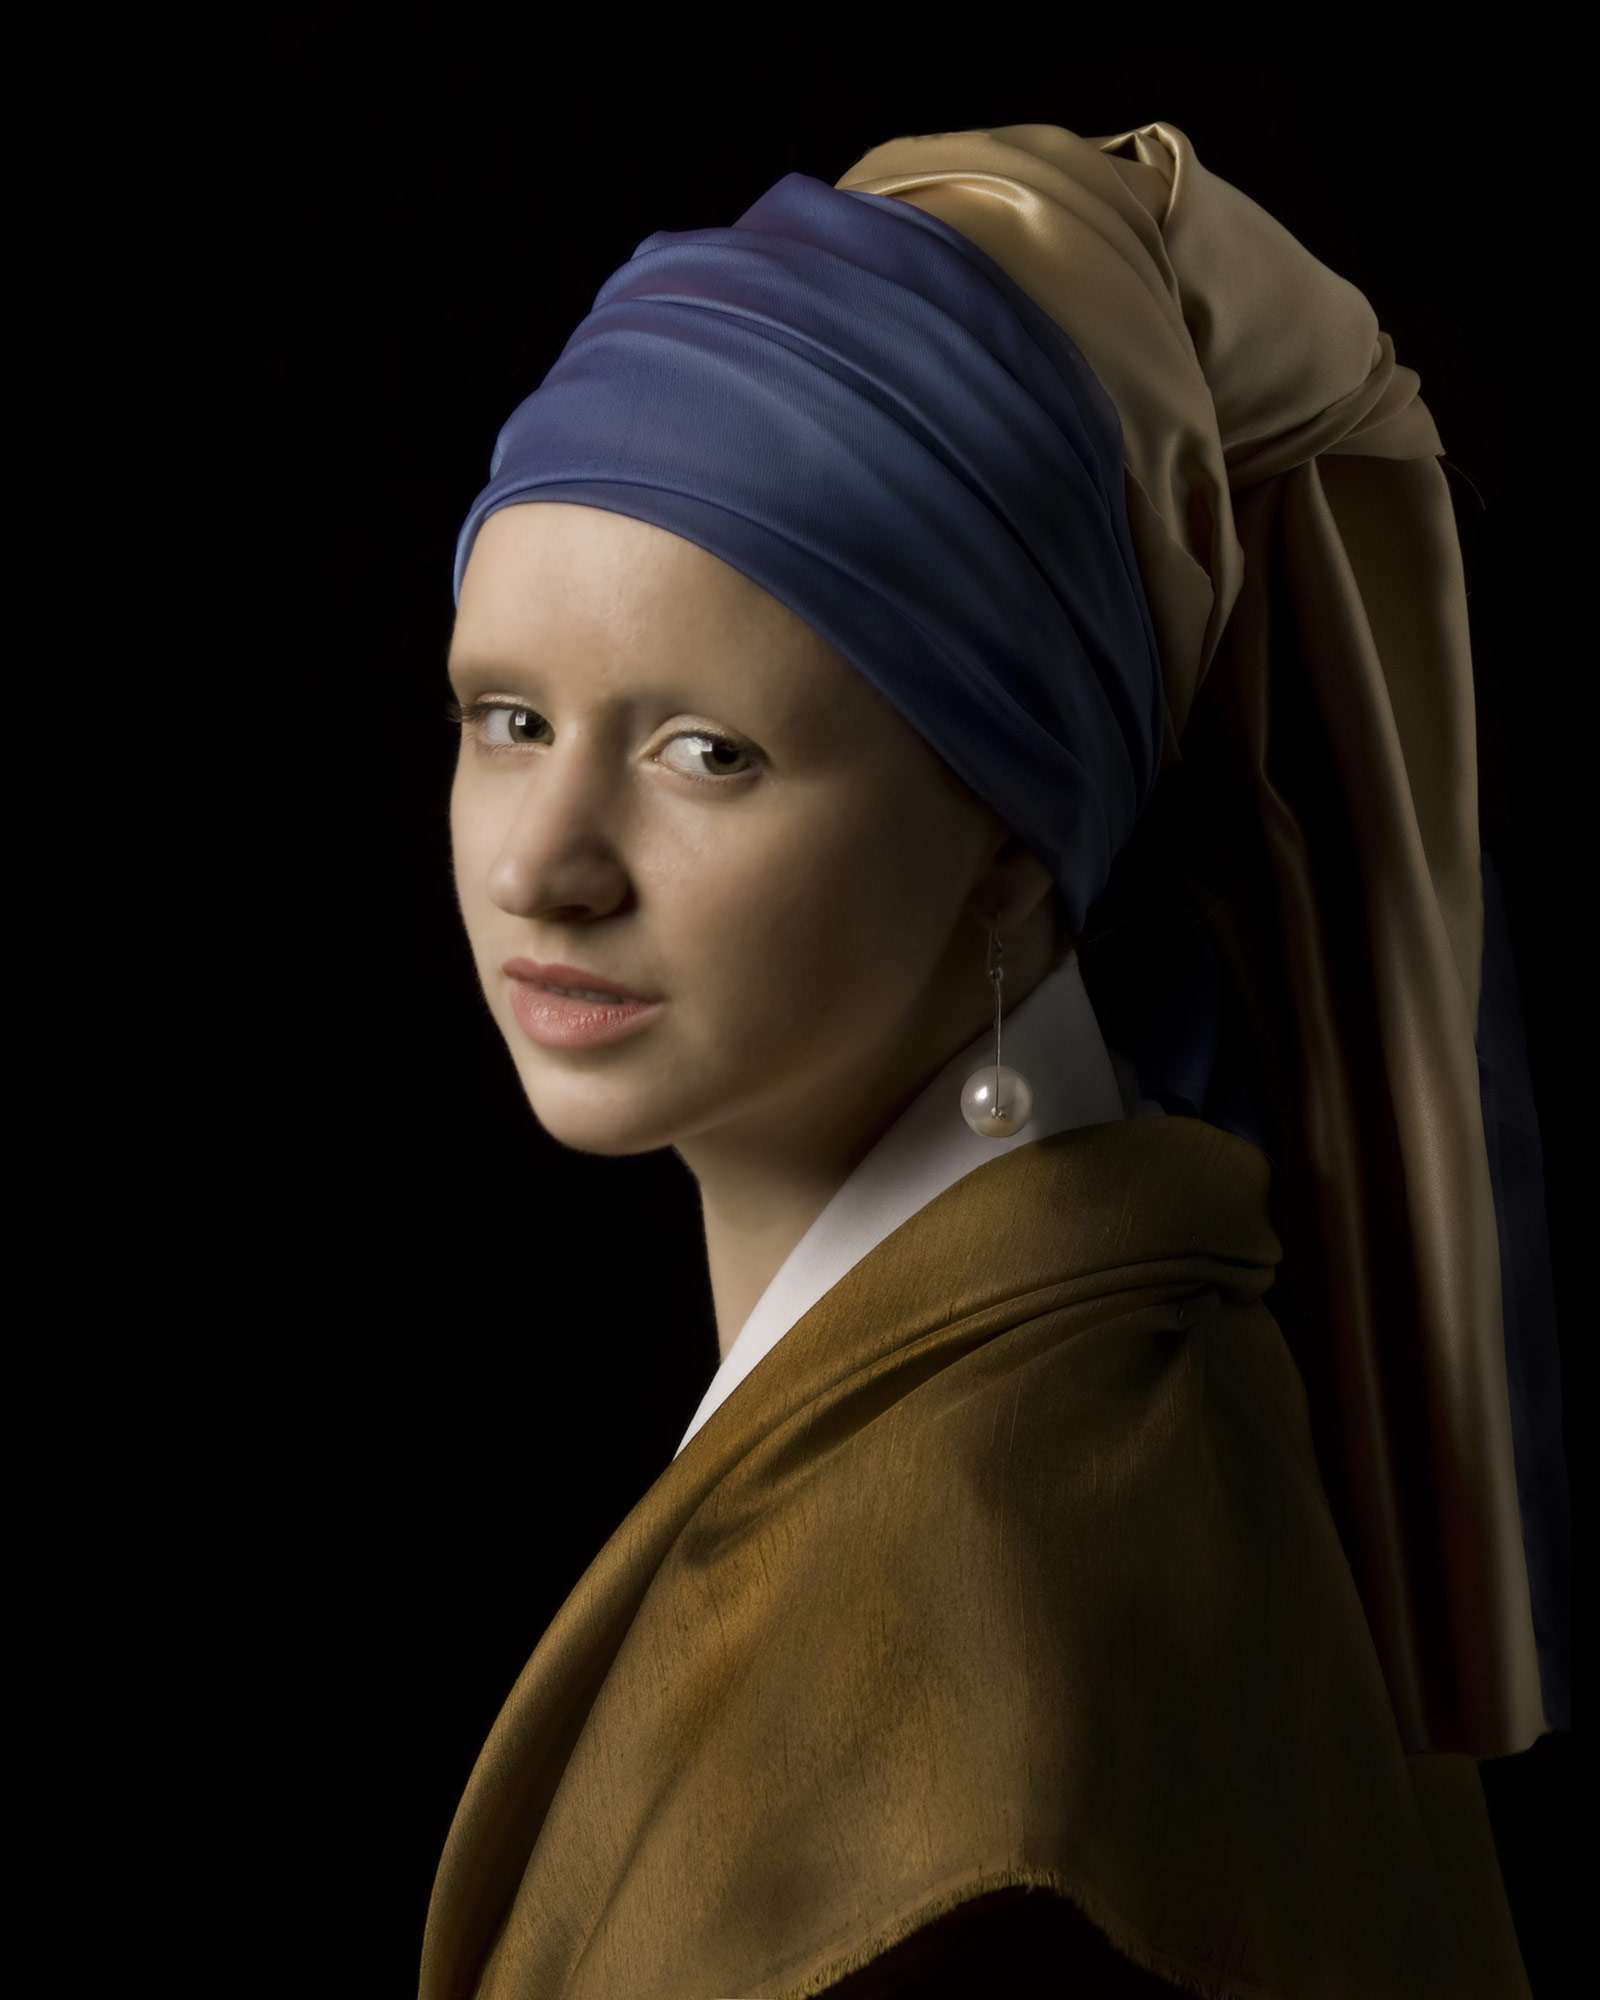 Girl_With_a_Pearl_Earring---Fine-Art-Portrait---Geoff-McGrath